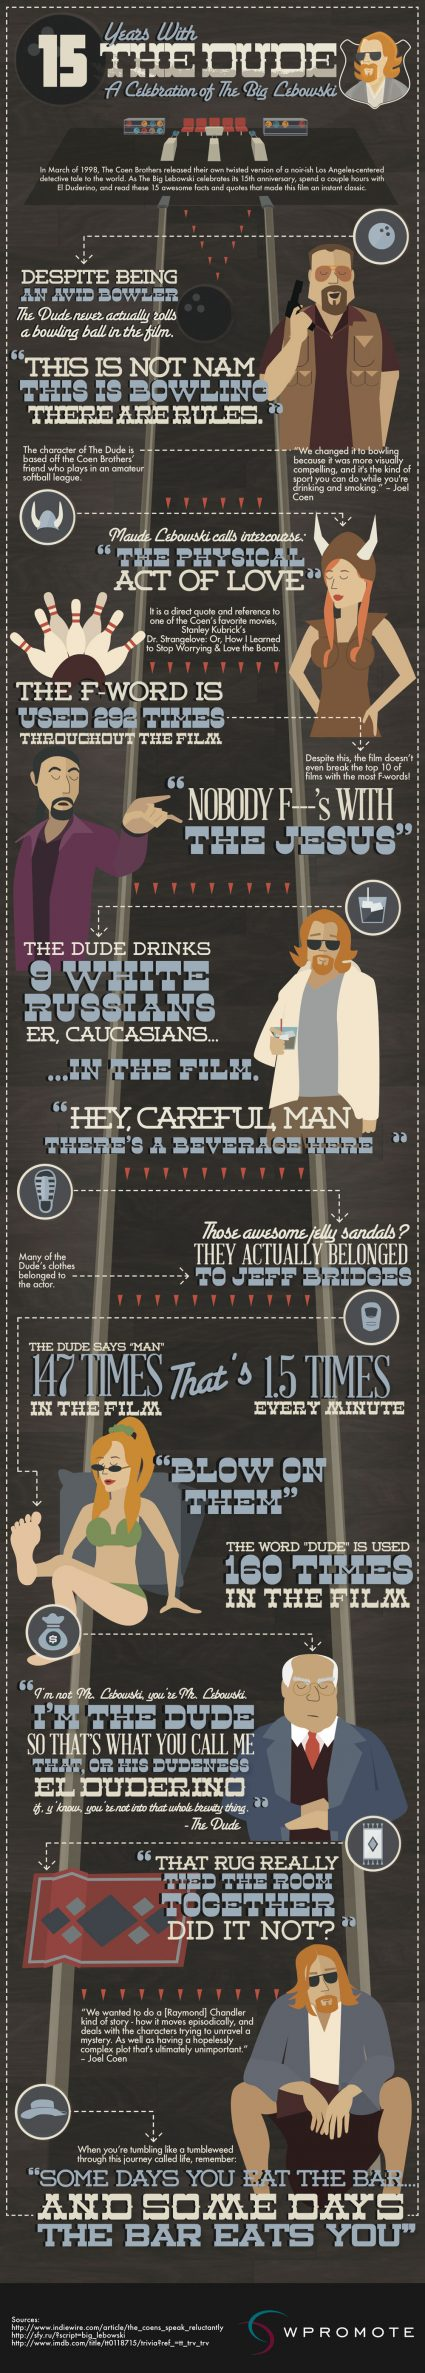 15 Years With The Big Lebowski (Infographic)